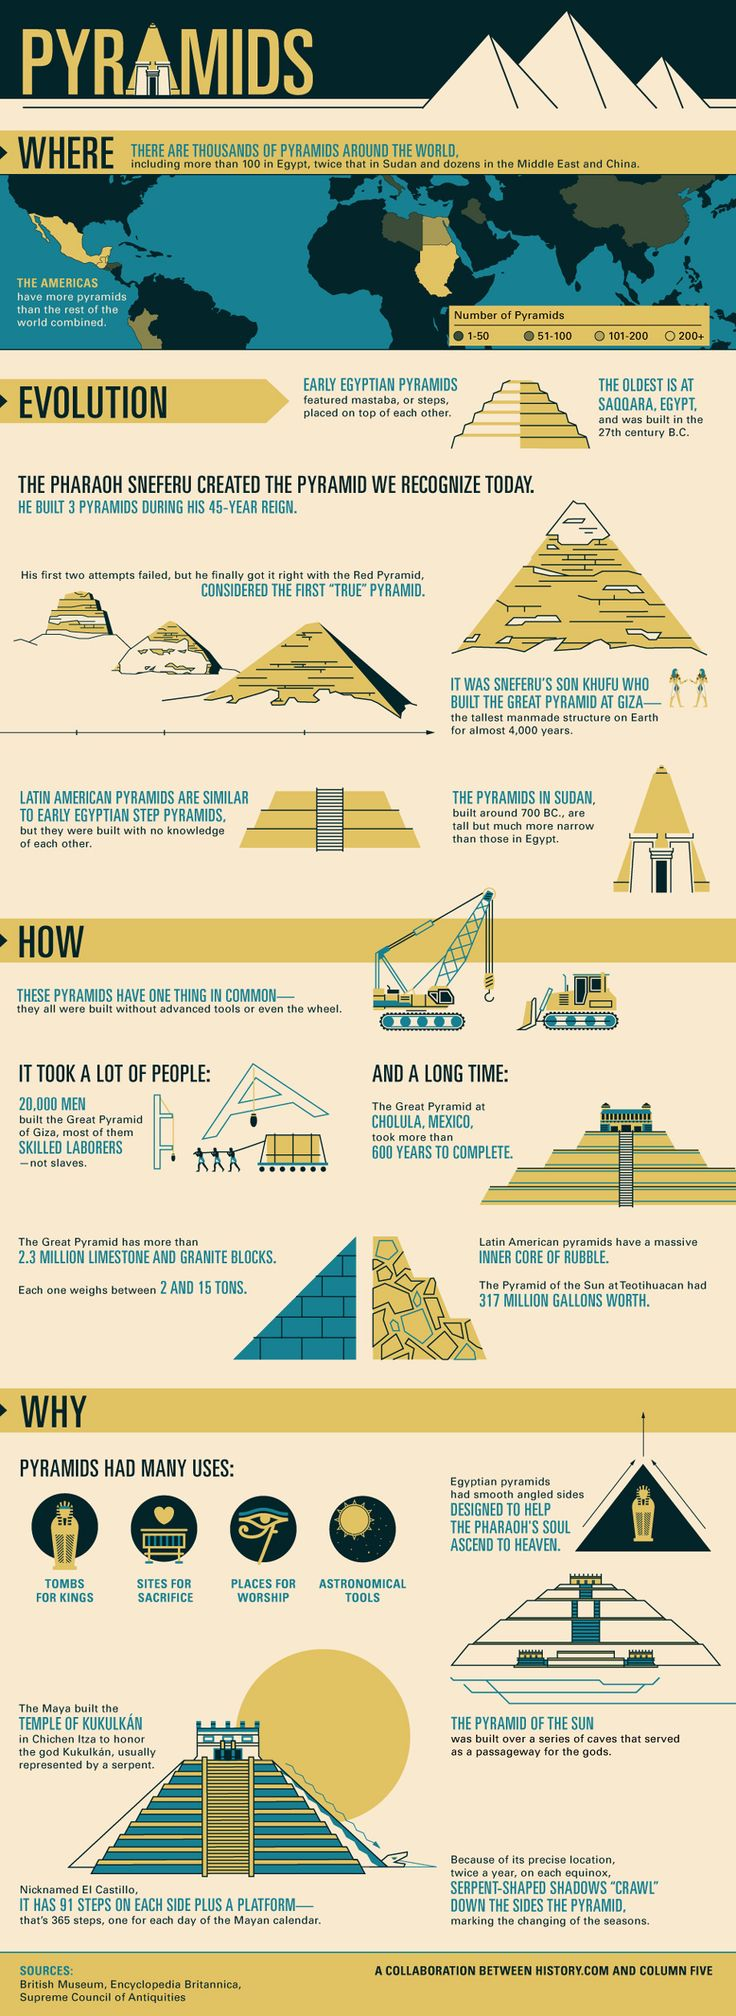 Mankind The Story of All of Us: History of Pyramids